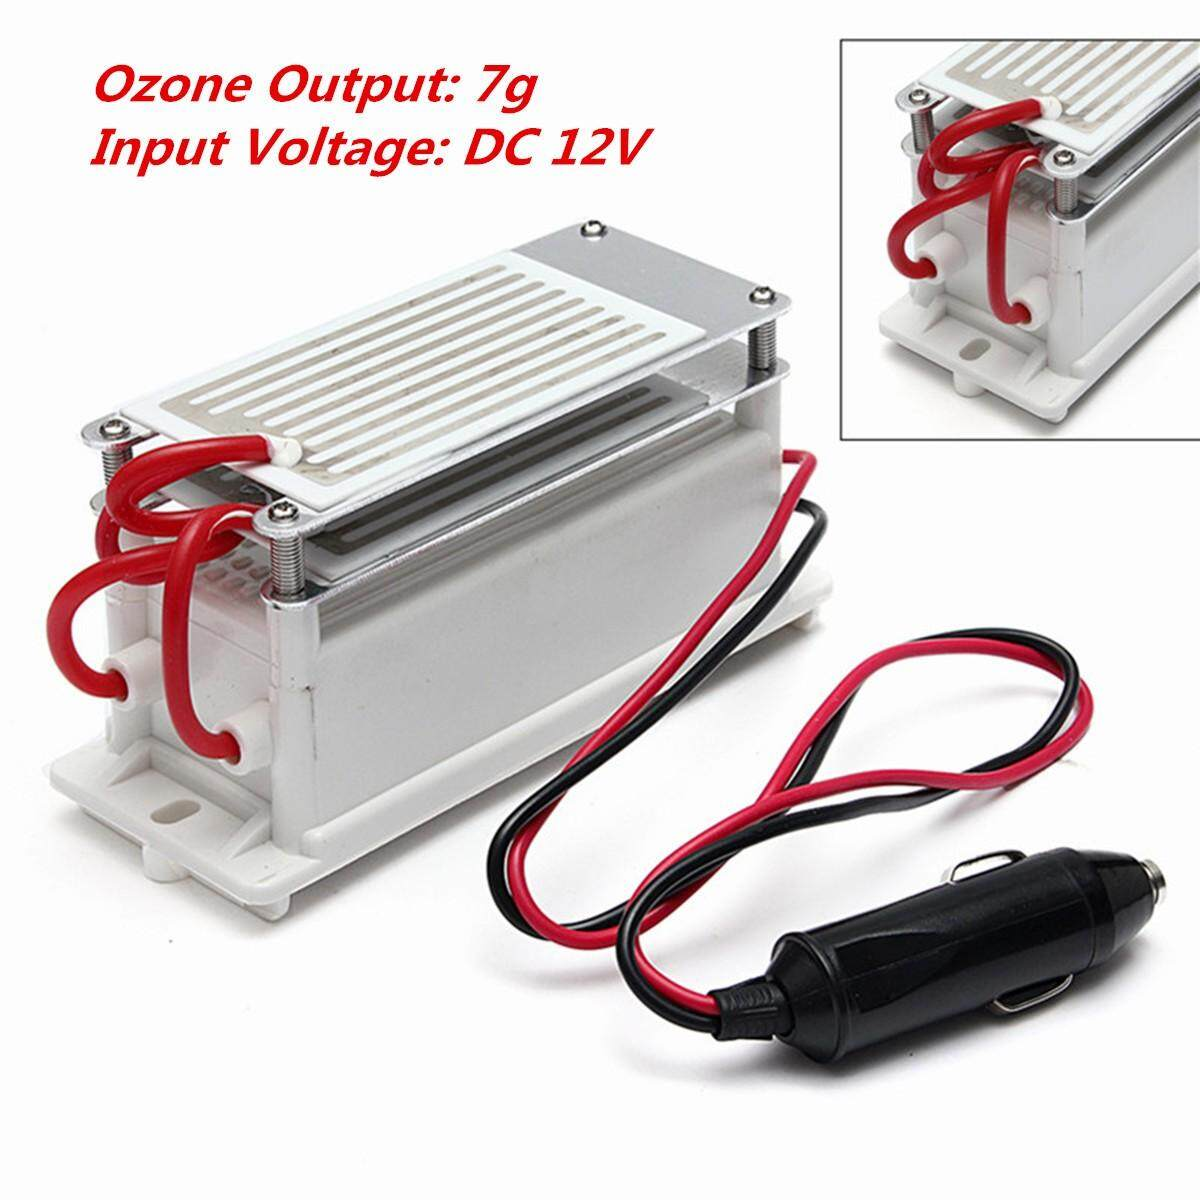 O zone G enerator Ceramic Plate DC 12V 7g Car Home Portable Air Sterilizer Cleaner